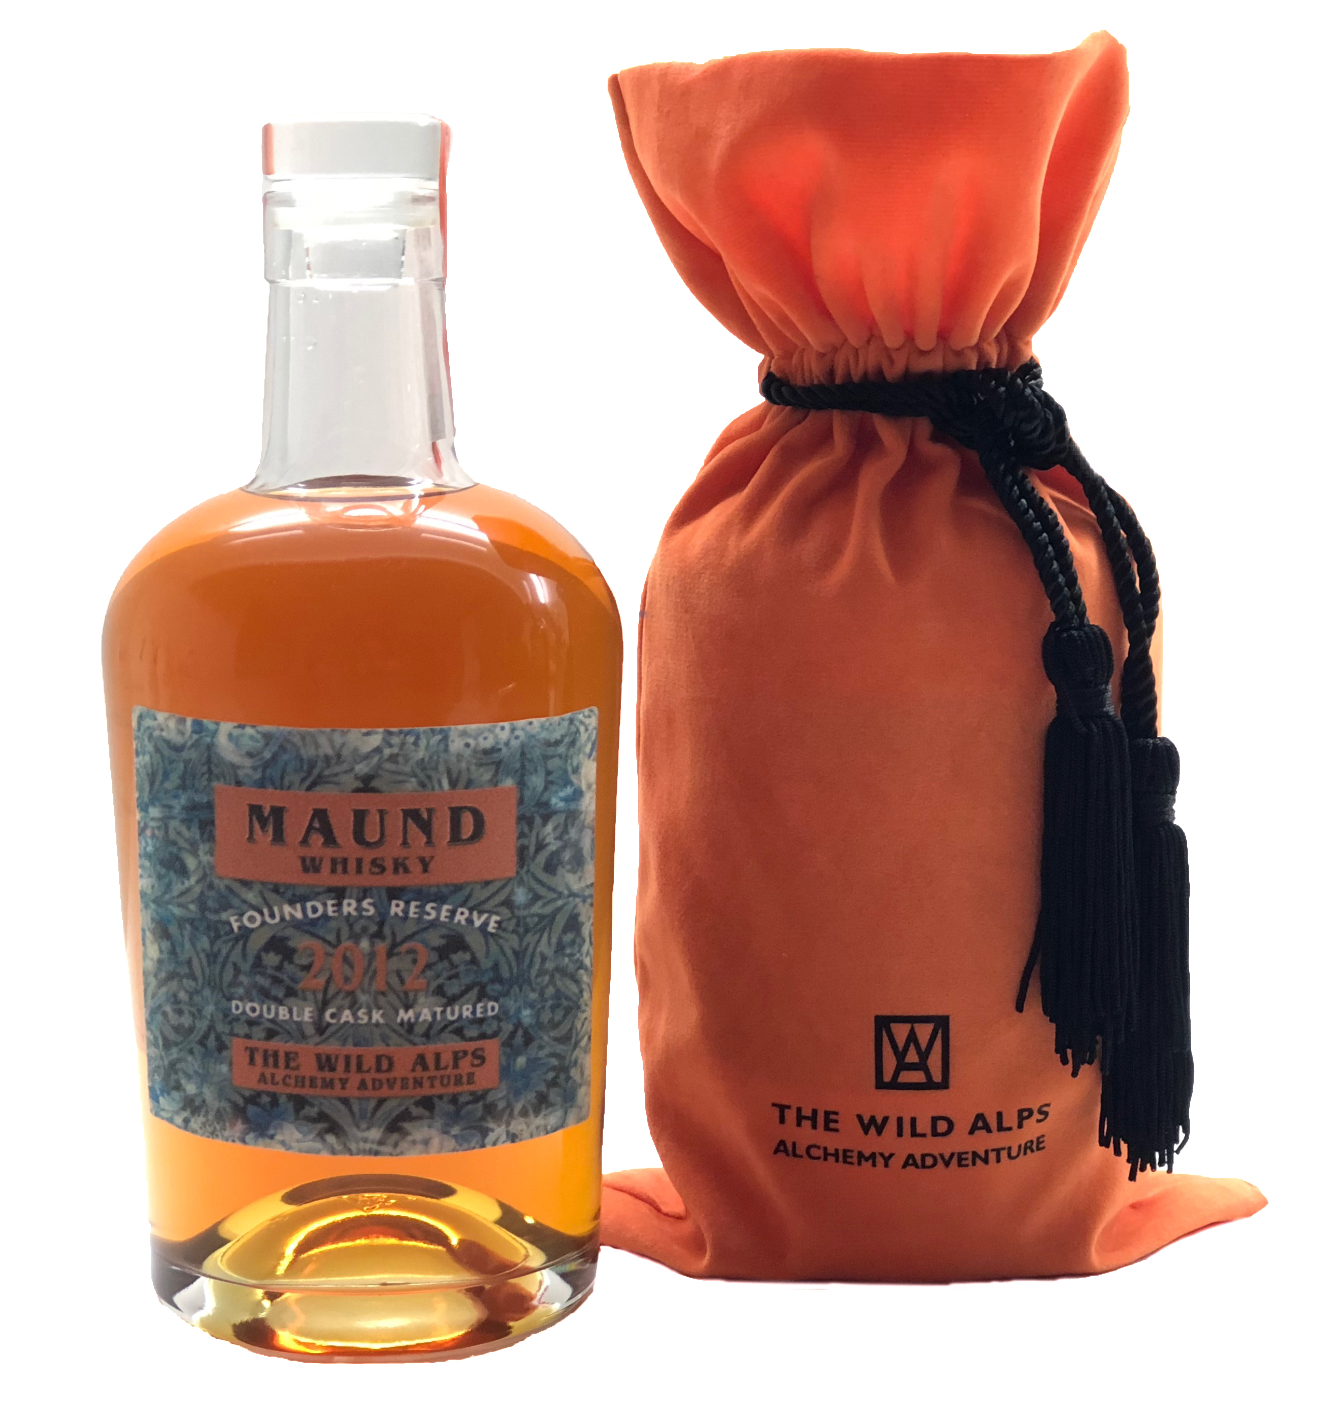 """The limited edition MAUND """"Founders Reserve 2012"""" - 390 bottles"""